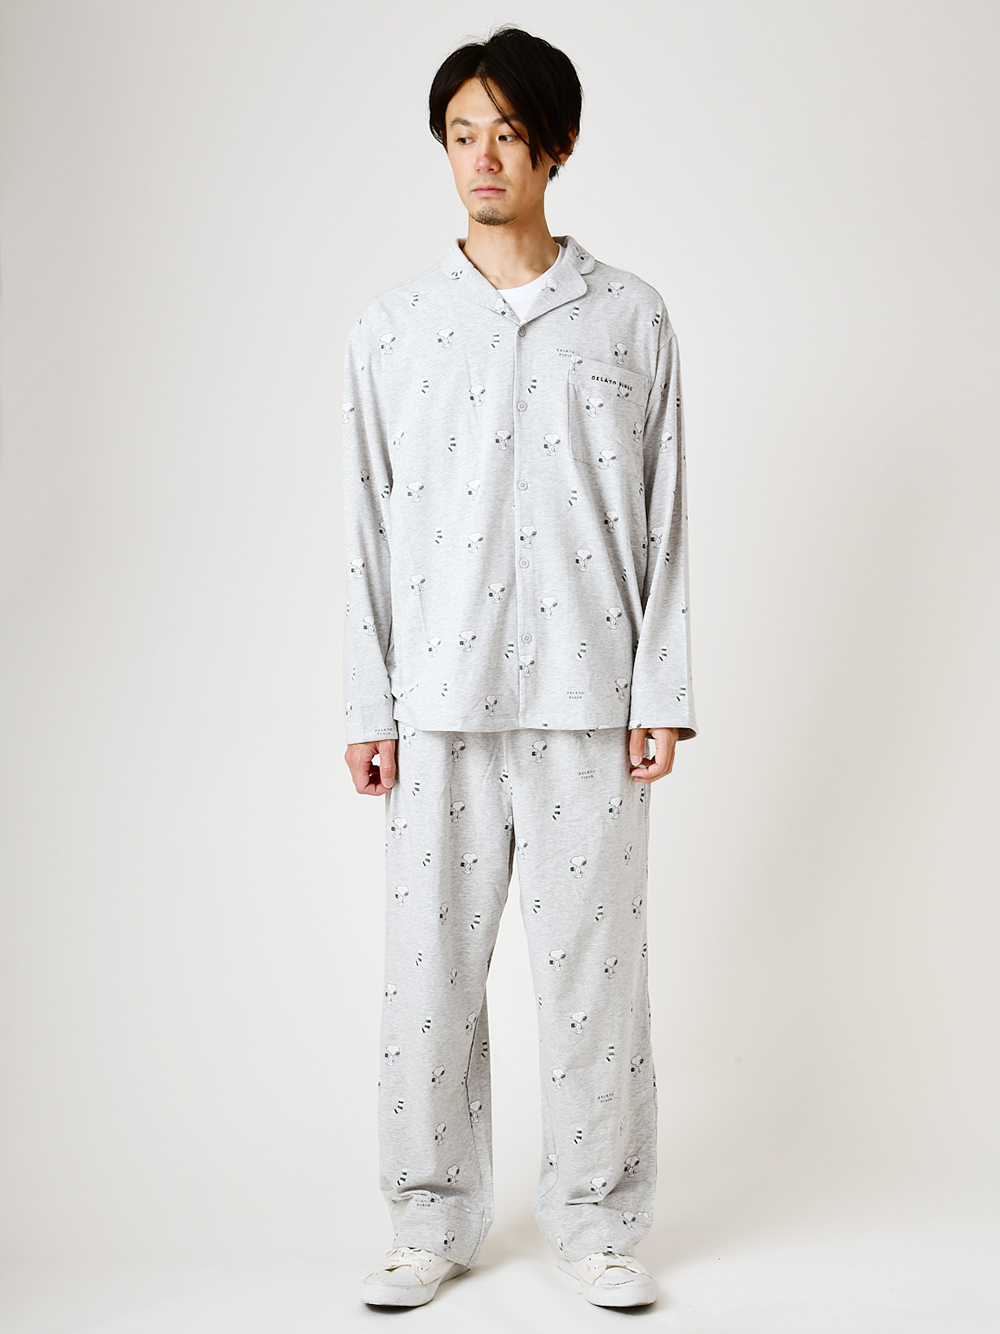 【PEANUTS】HOMME シャツ | PMCT205905